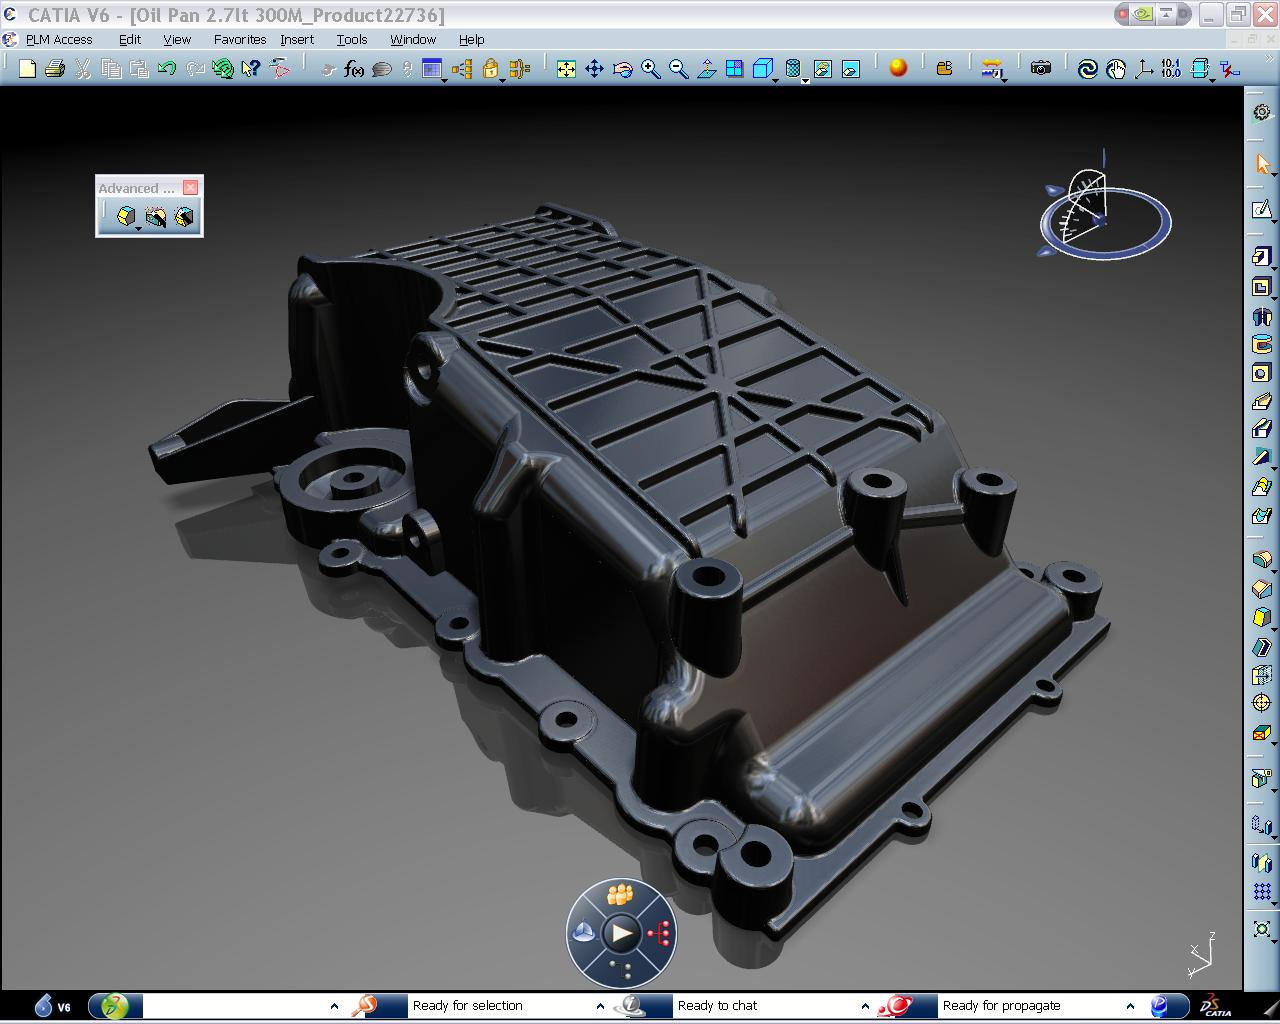 CATIA simulation mold and die for an oil pan